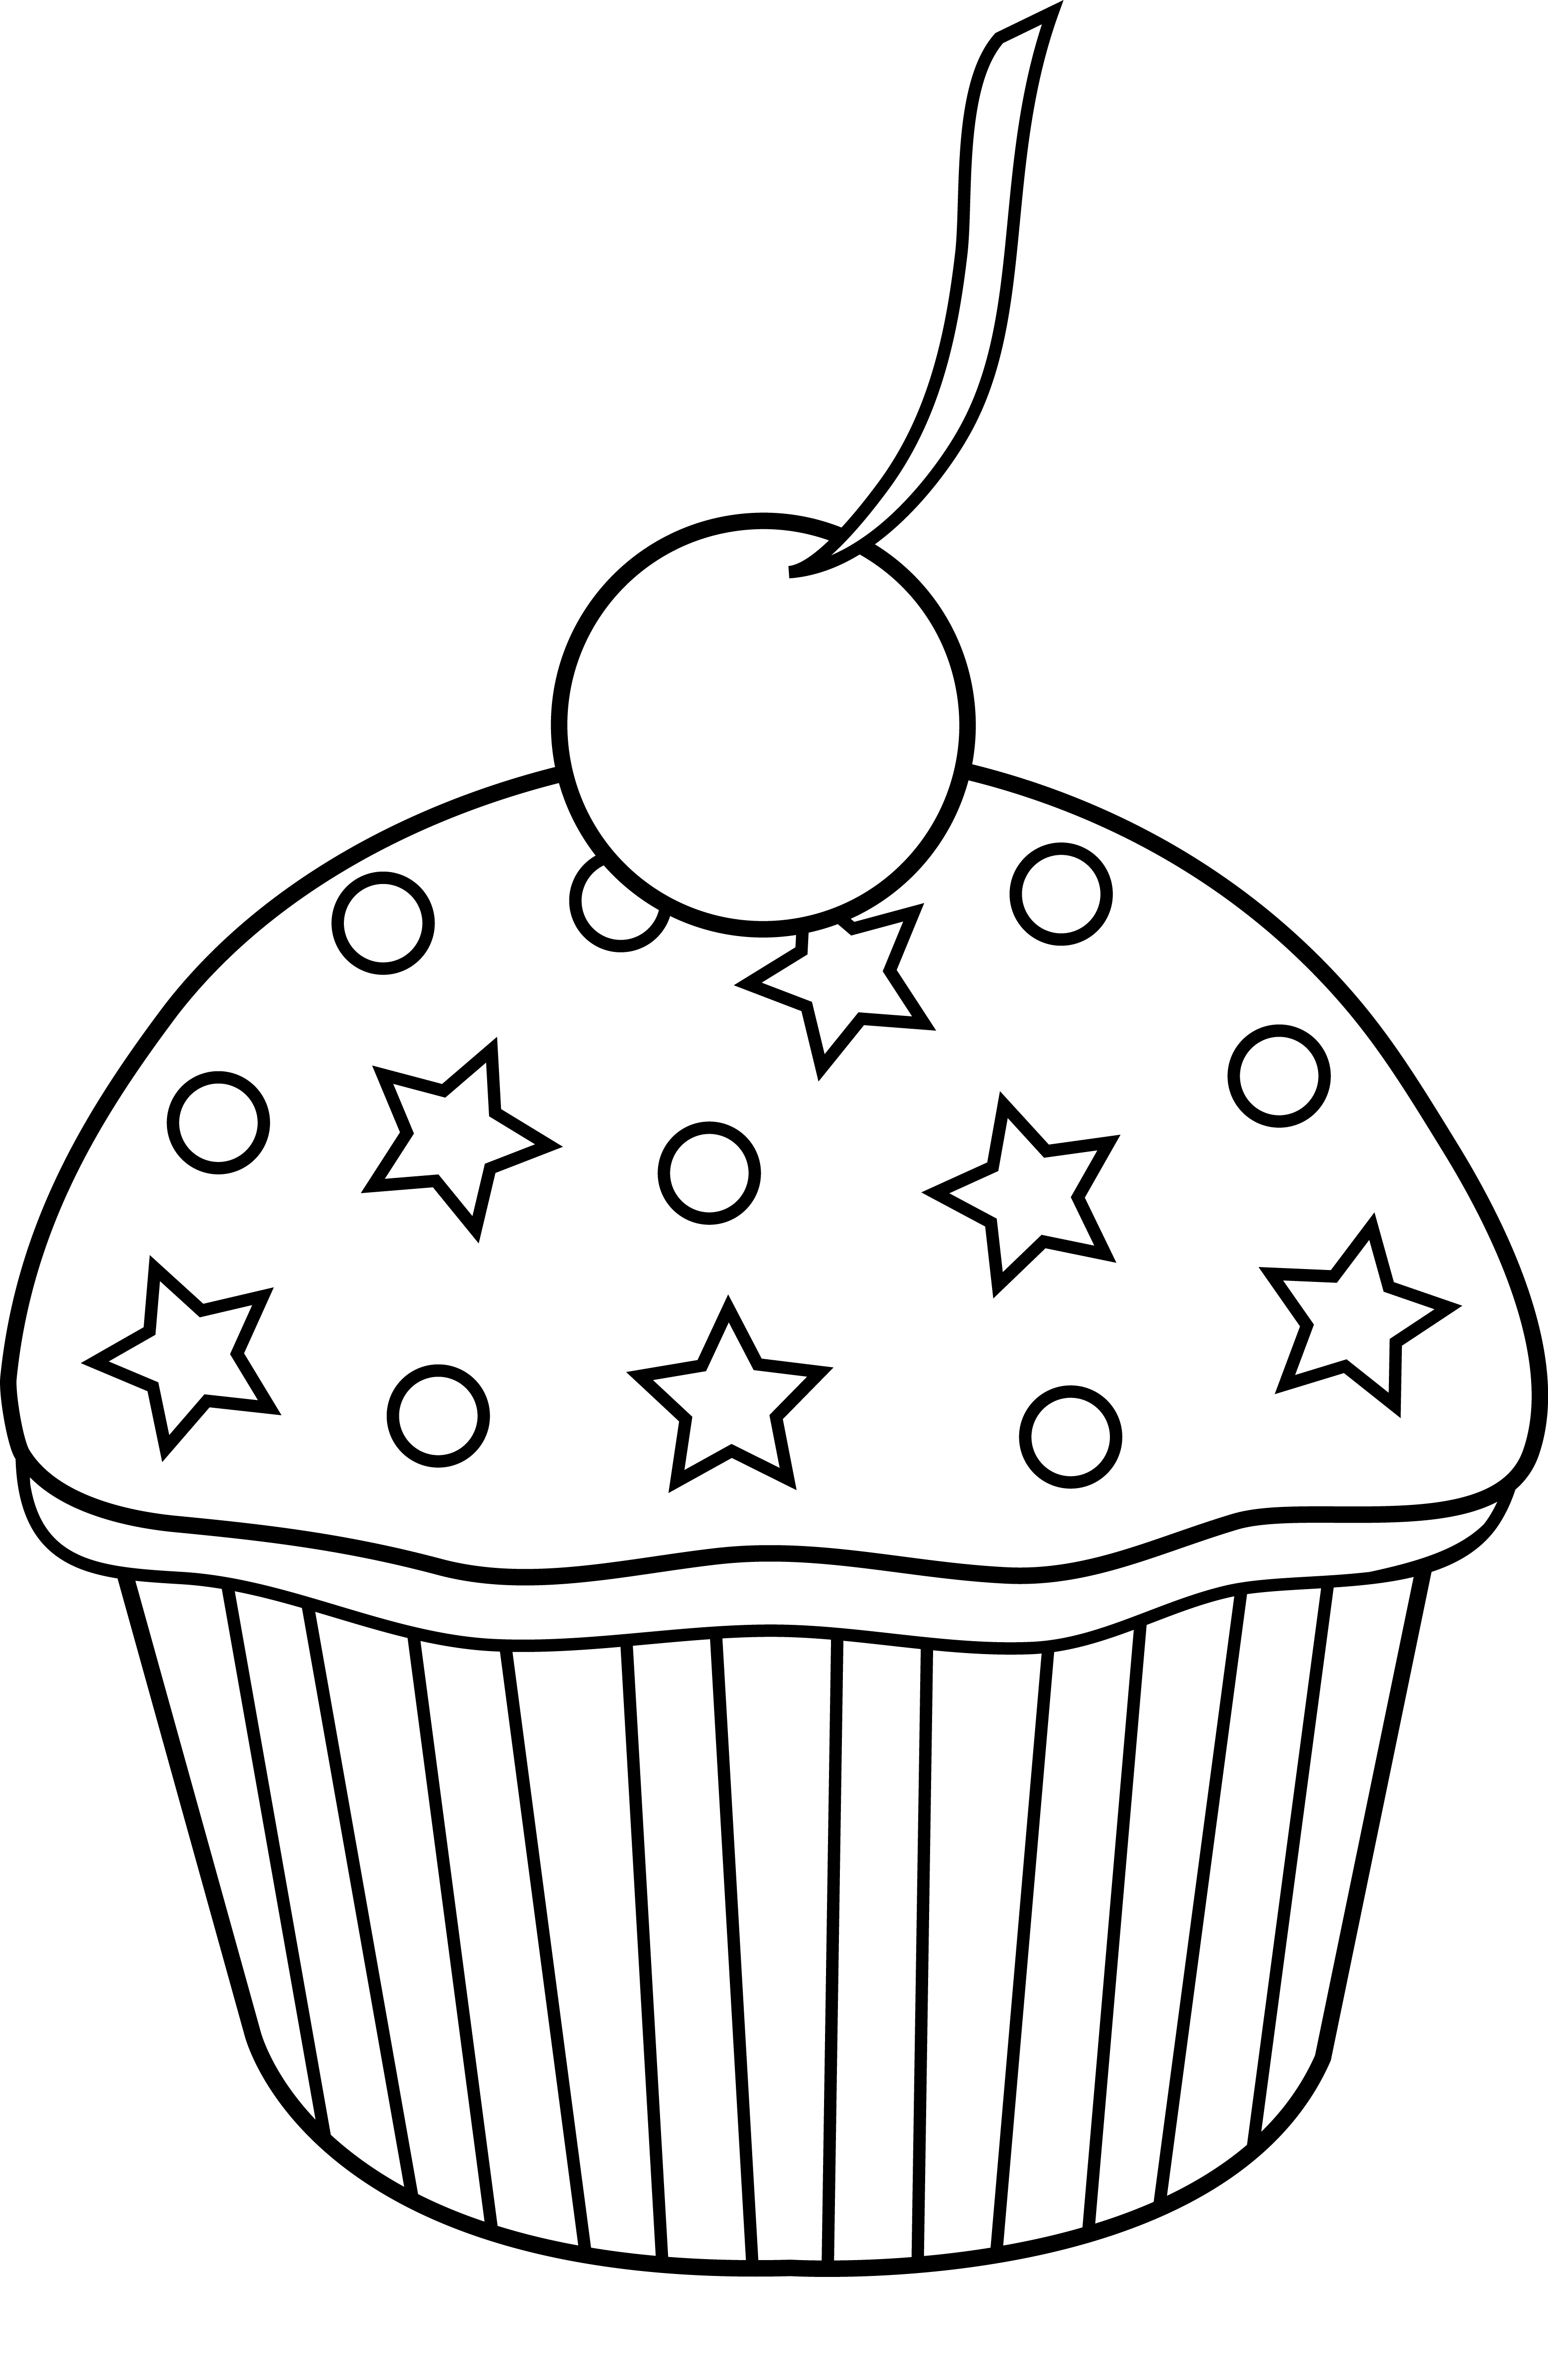 Cute Colorable Cupcake Design Free Clip Art Clip Art Easy Coloring Pages Black And White Cupcakes